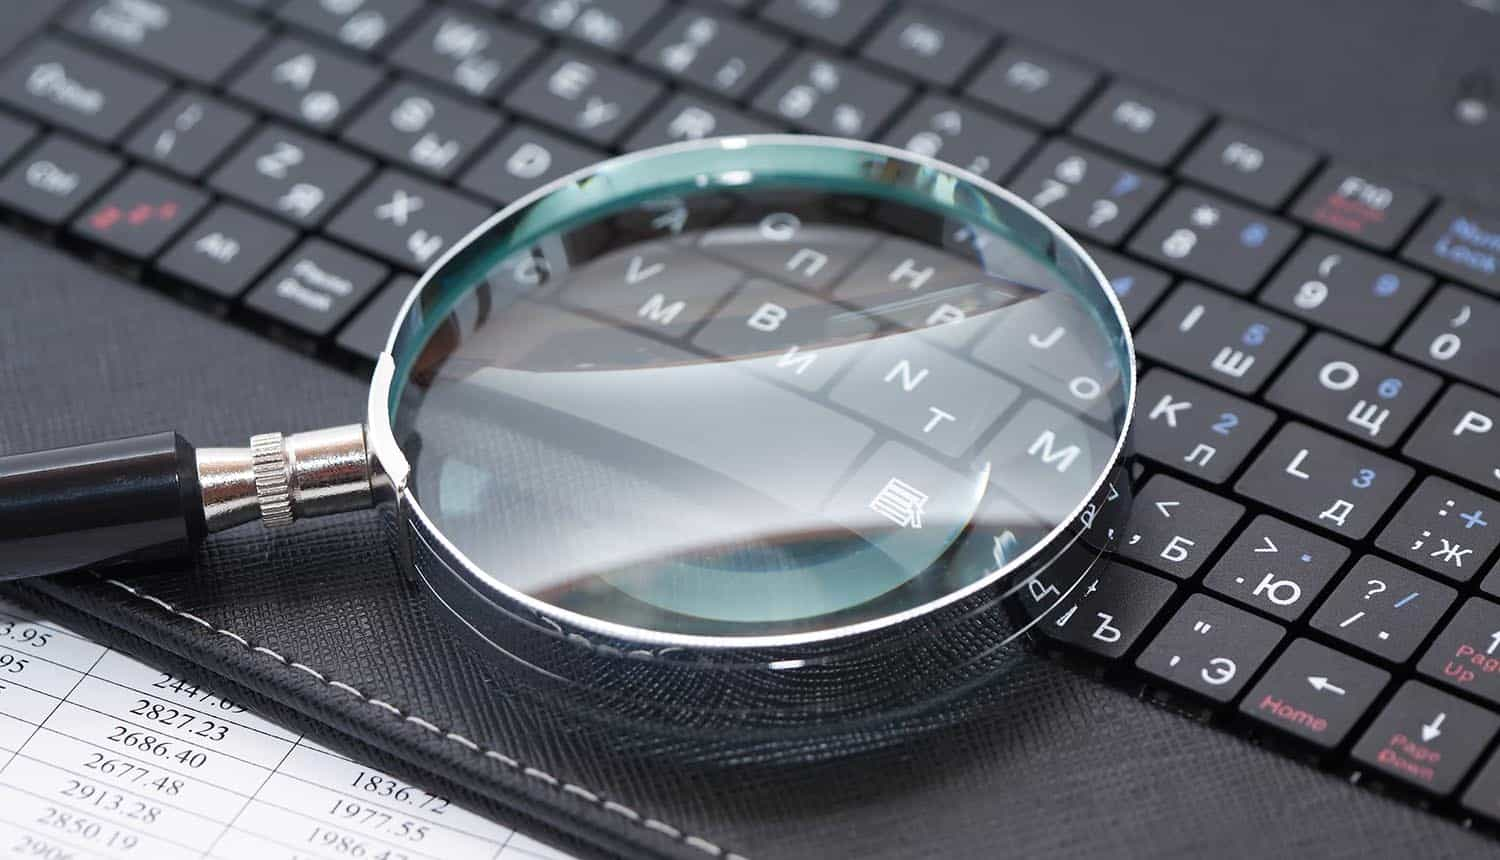 Magnifying glass on black laptop keyboard showing compliance audits